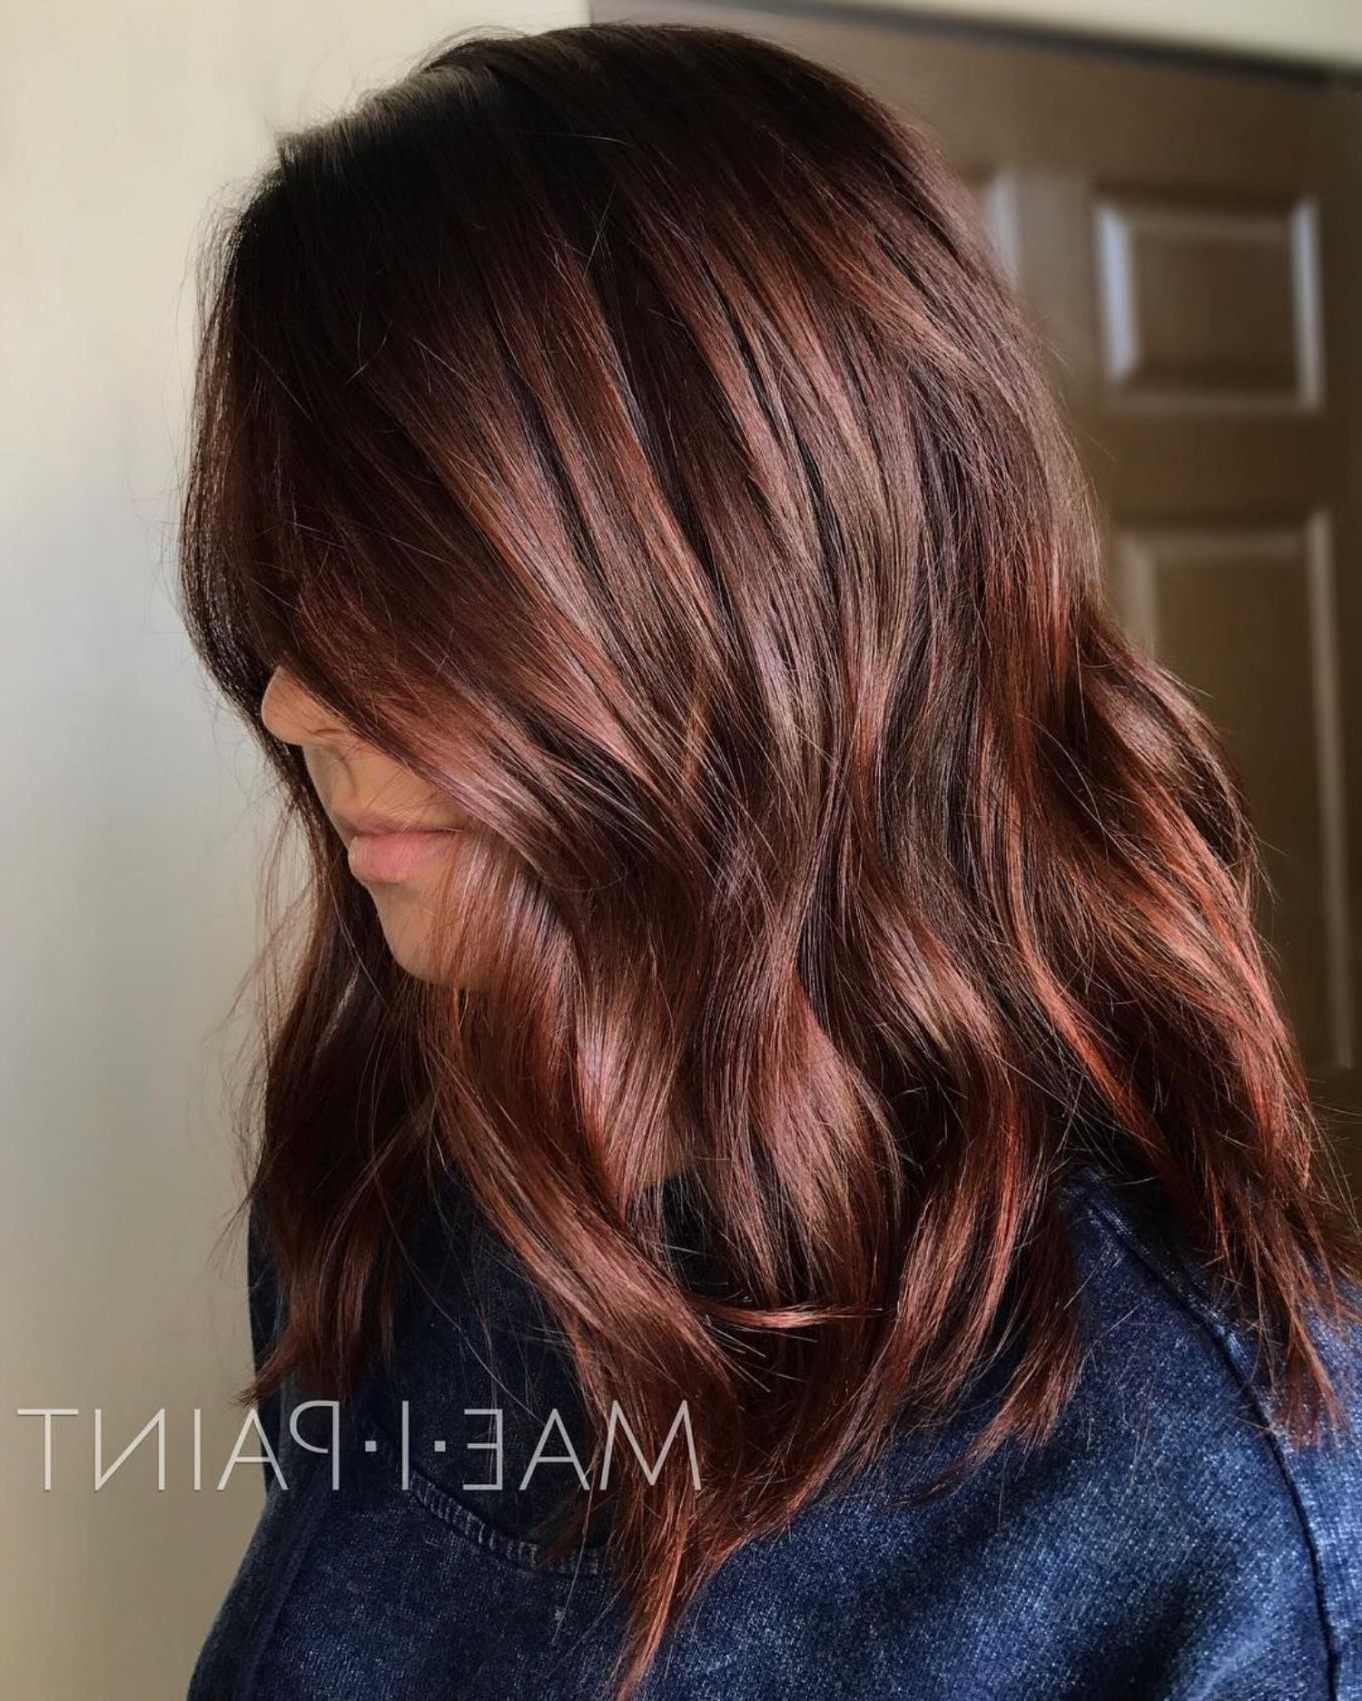 Well Liked Long Layered Hairstyles With Added Sheen Intended For Auburn Hair #26: Cinnamon Sheen For Medium Hair (Gallery 6 of 20)